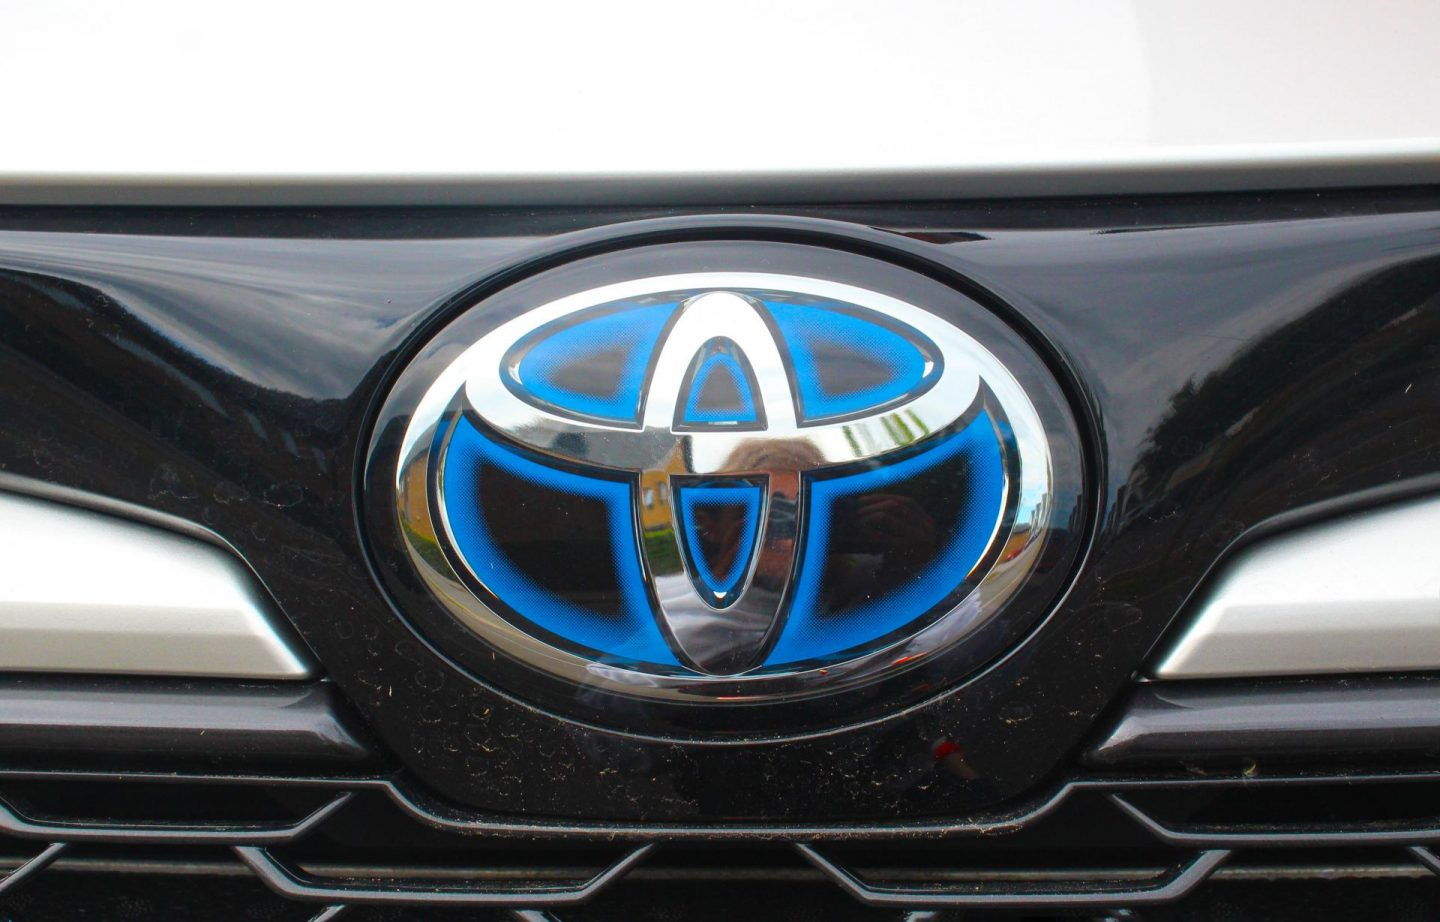 Badge and grille at front of car.